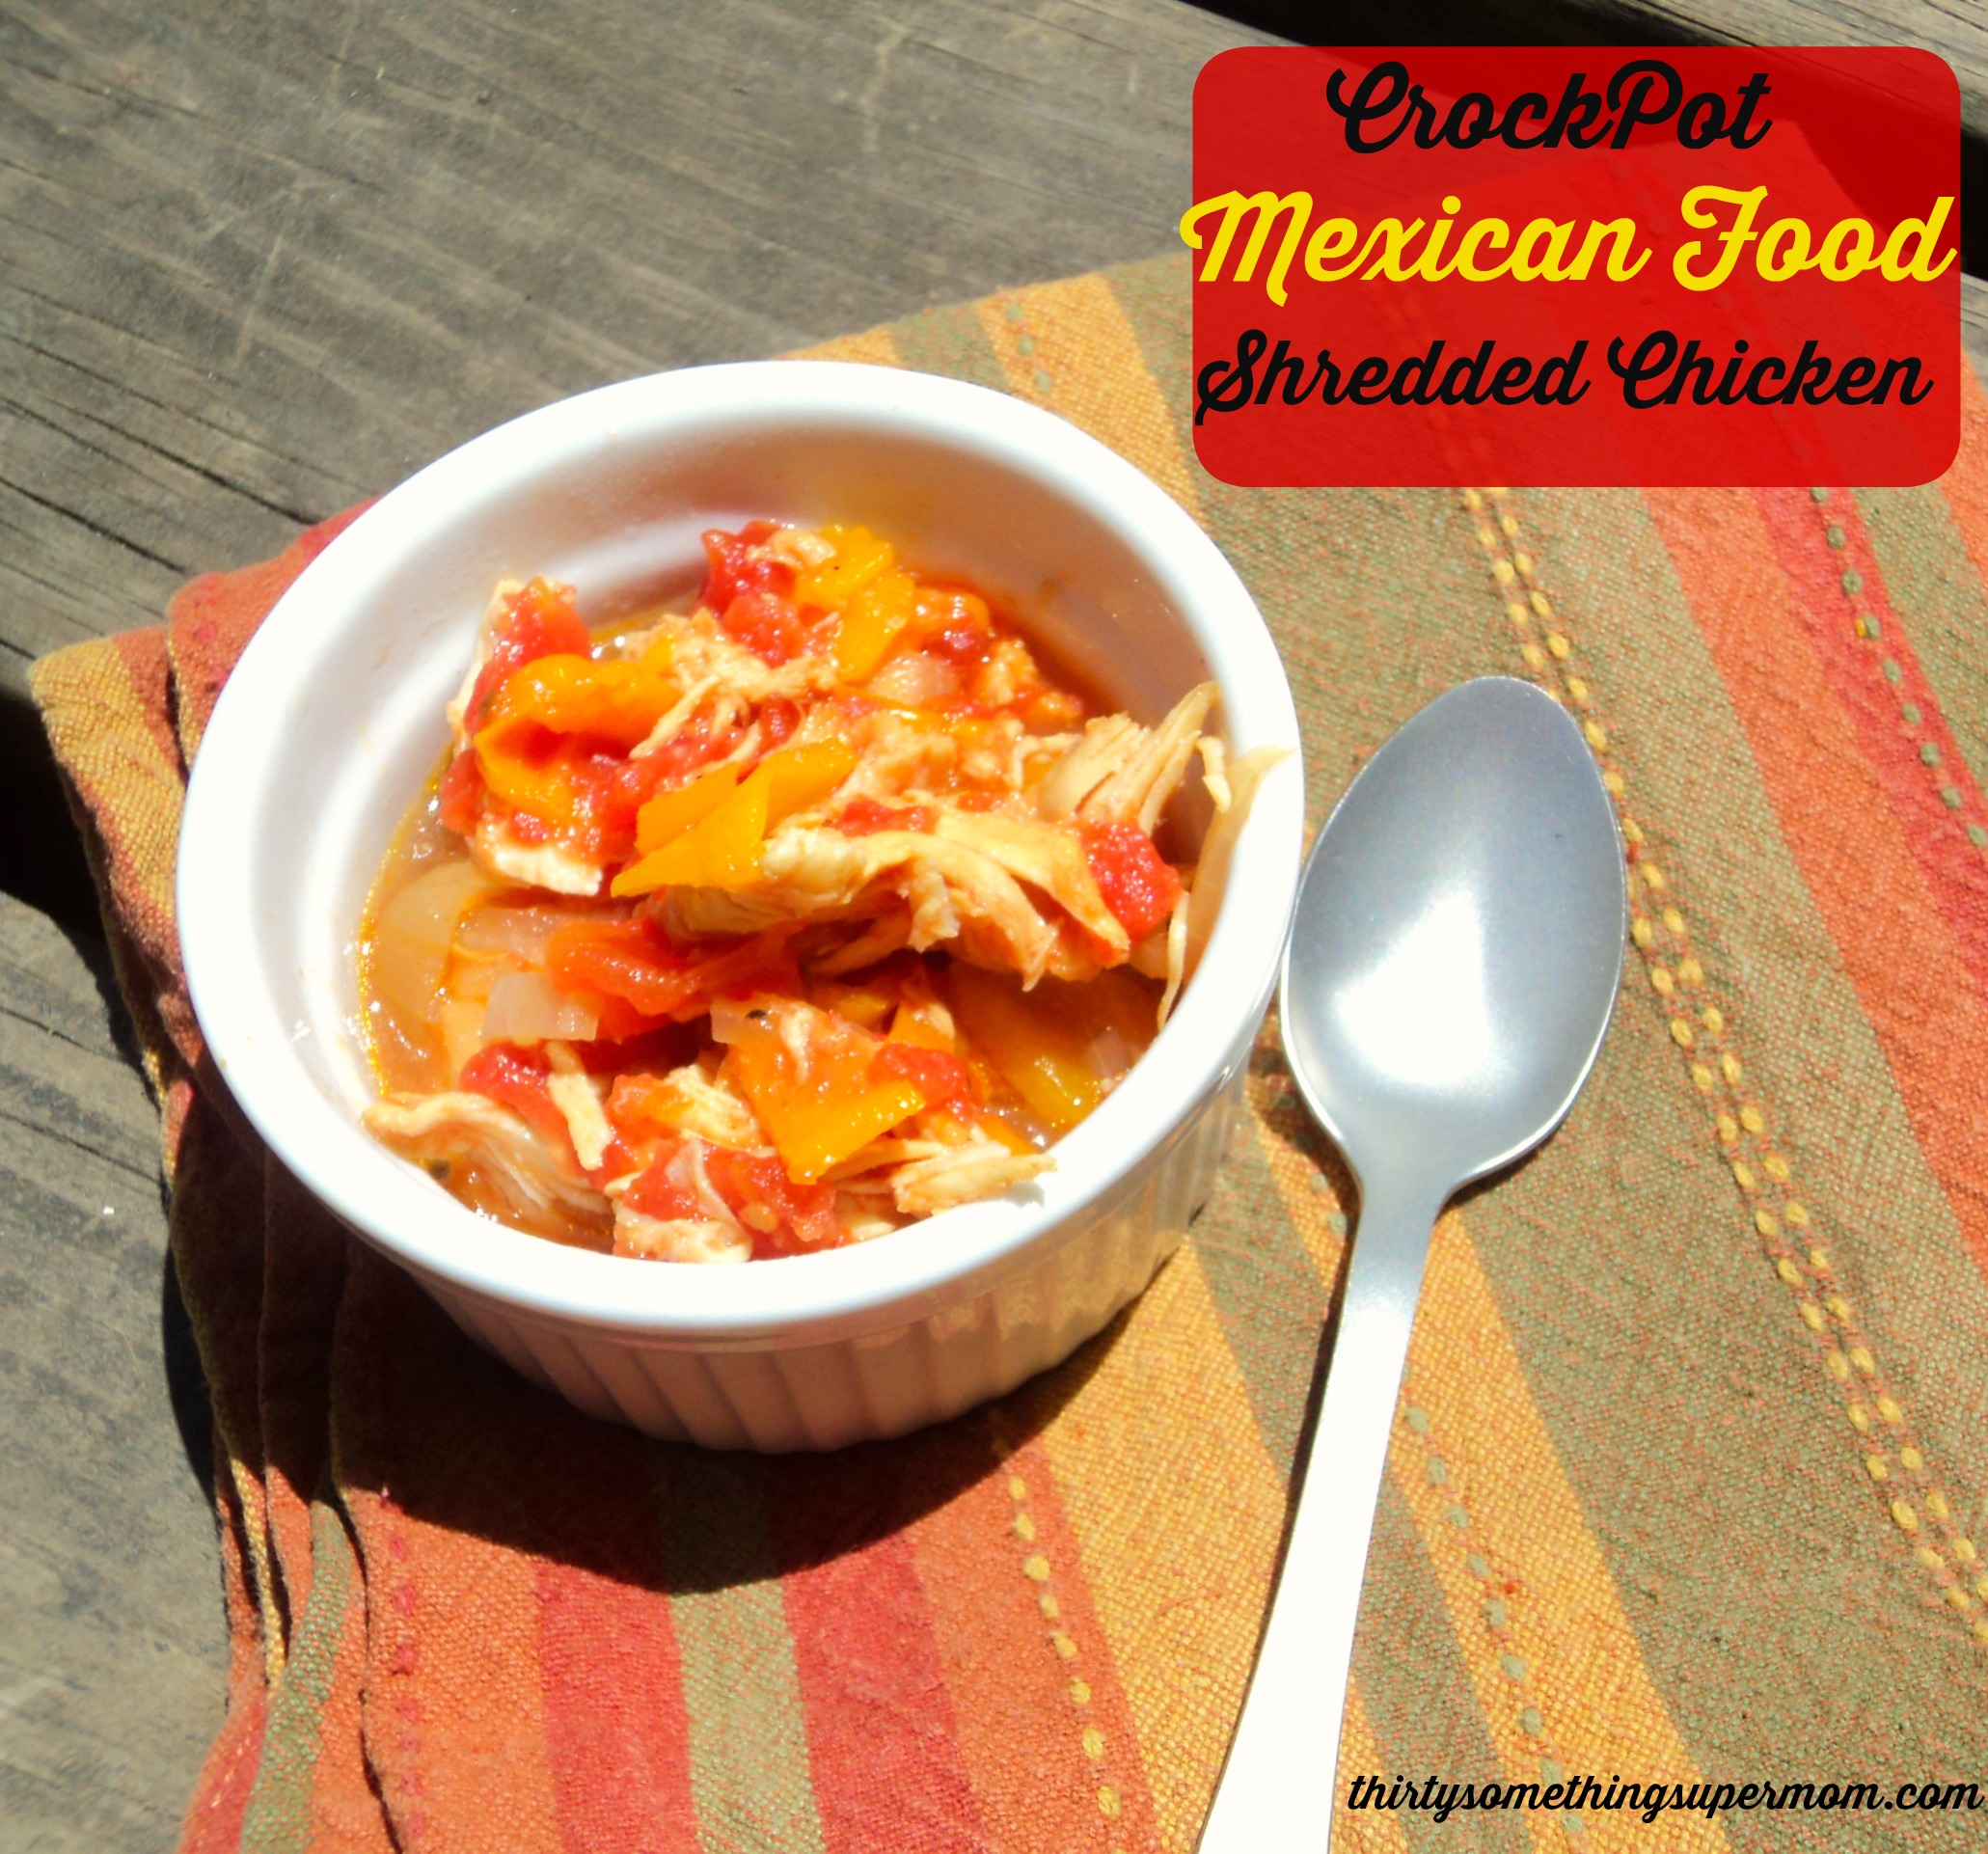 CrockPot Mexican Food :Shredded Chicken